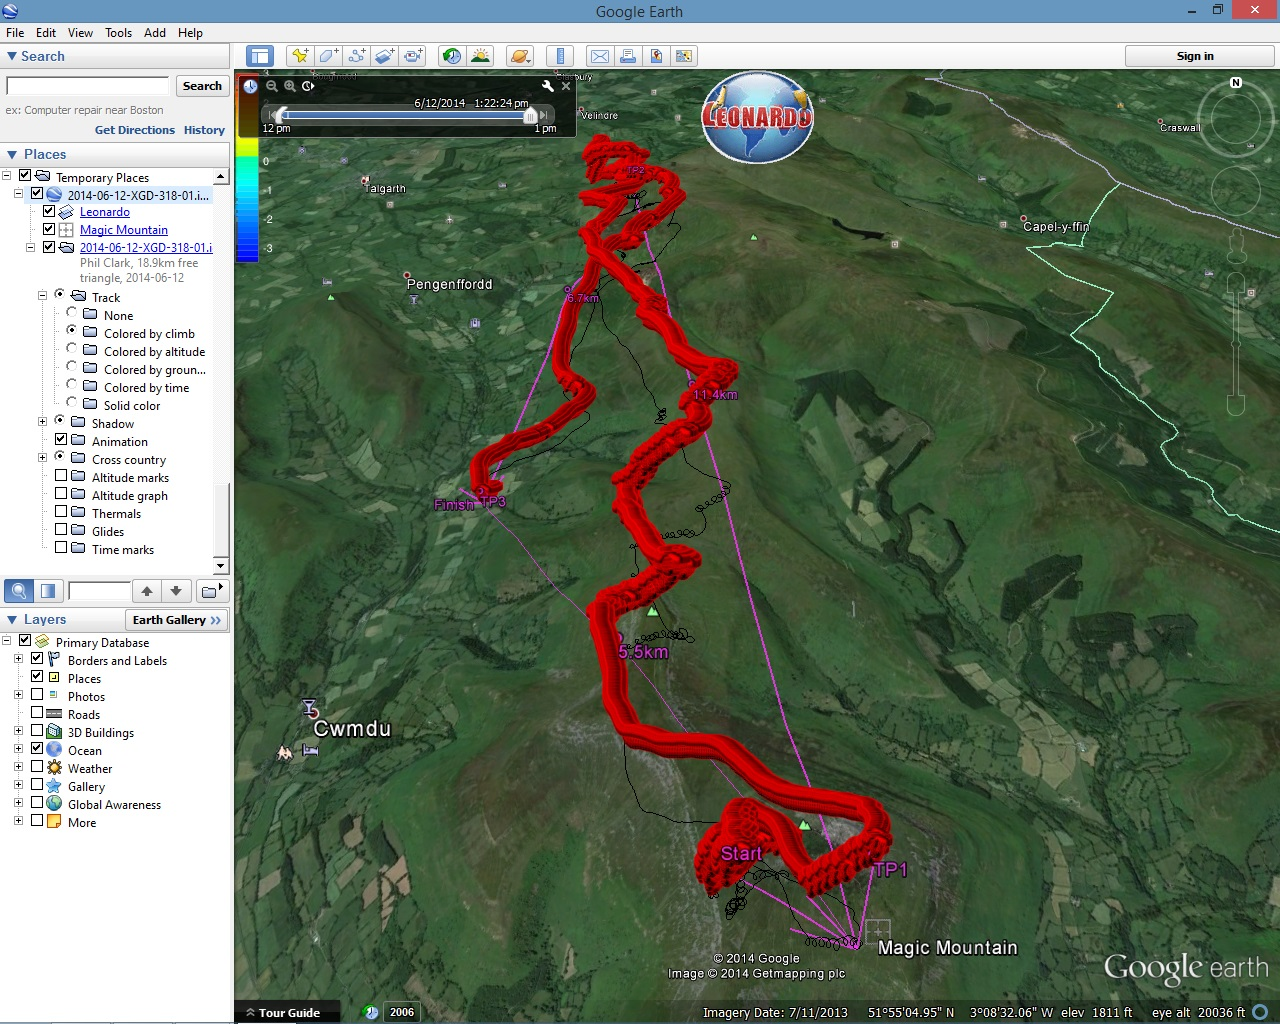 Leonardo detailed tracklog in Google Earth